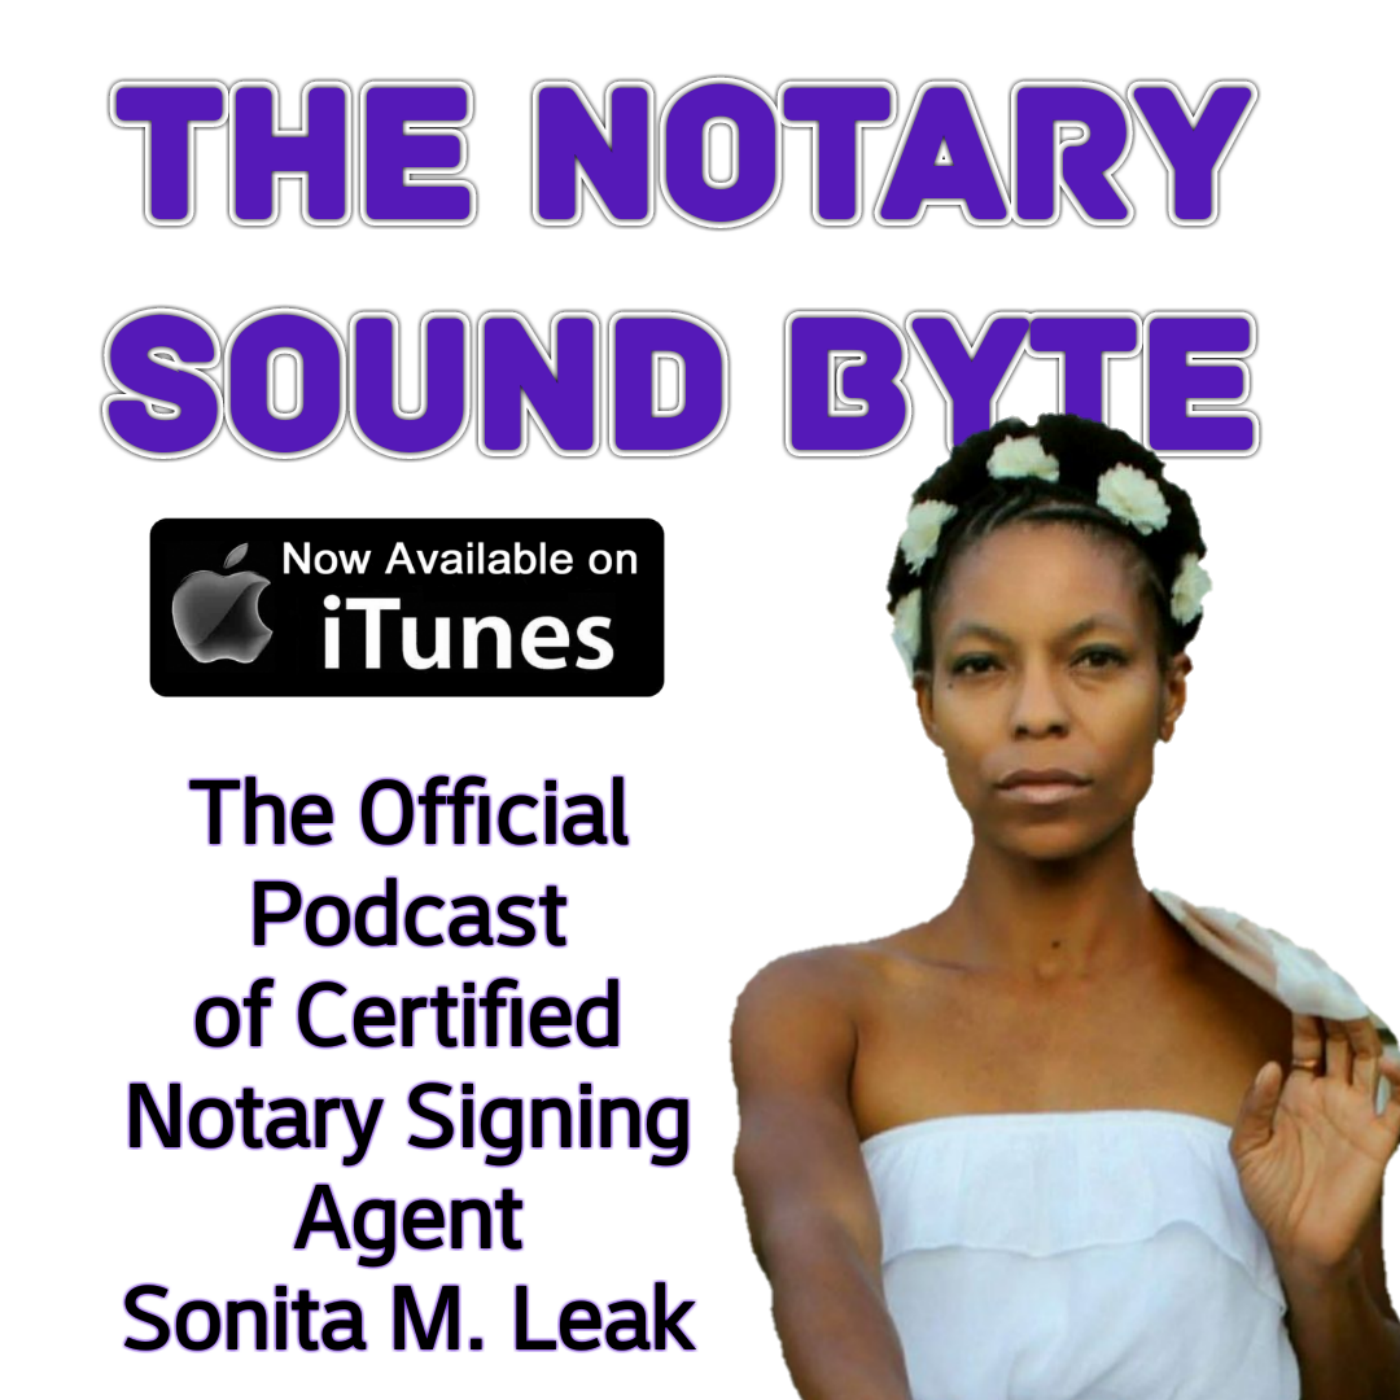 The Notary Sound Byte: Notary Public Podcast of Sonita M. Leak